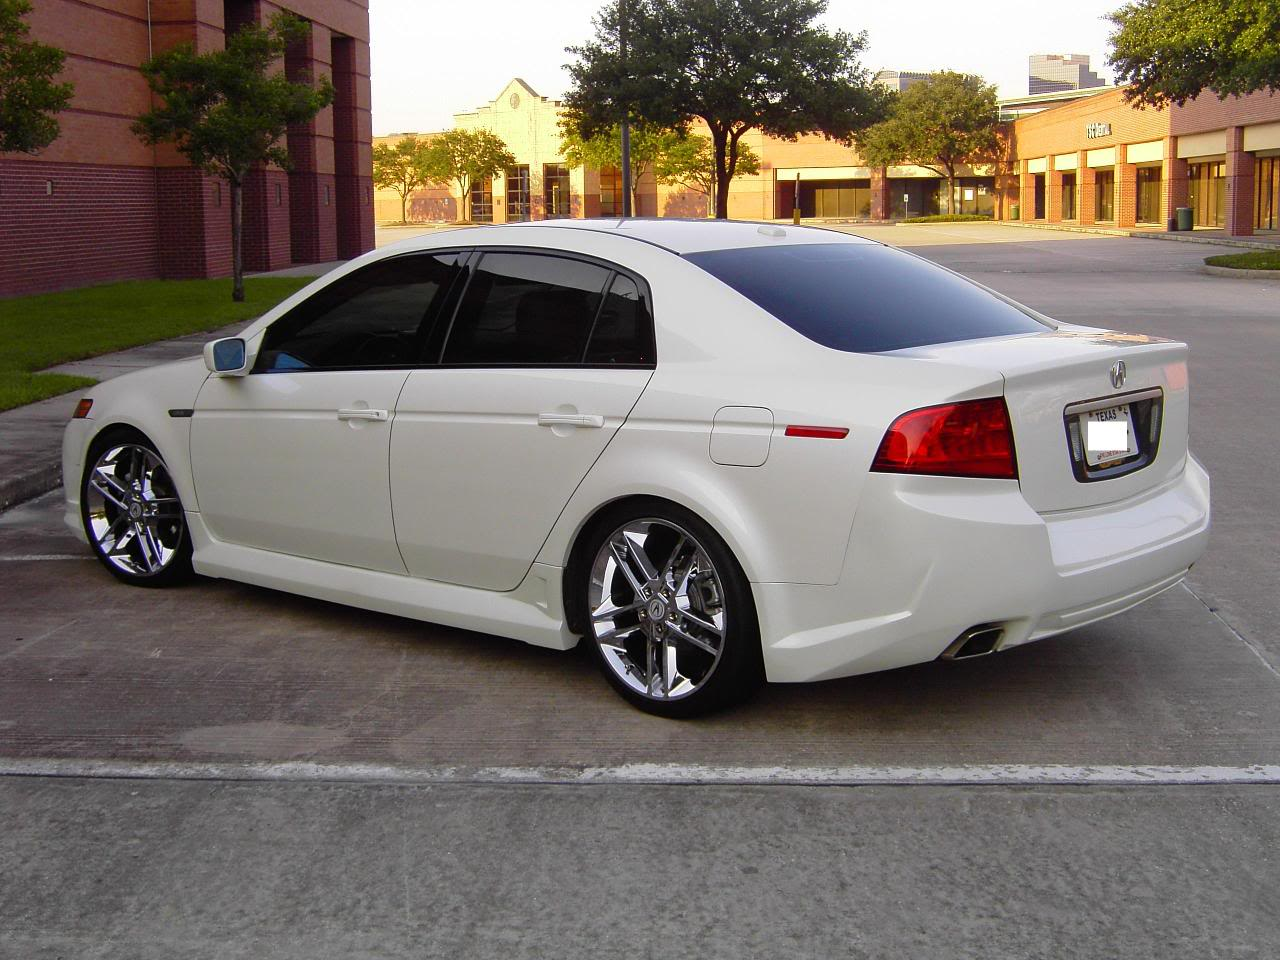 Acura Tl 2005 White wallpaper | 1280x960 | #28297